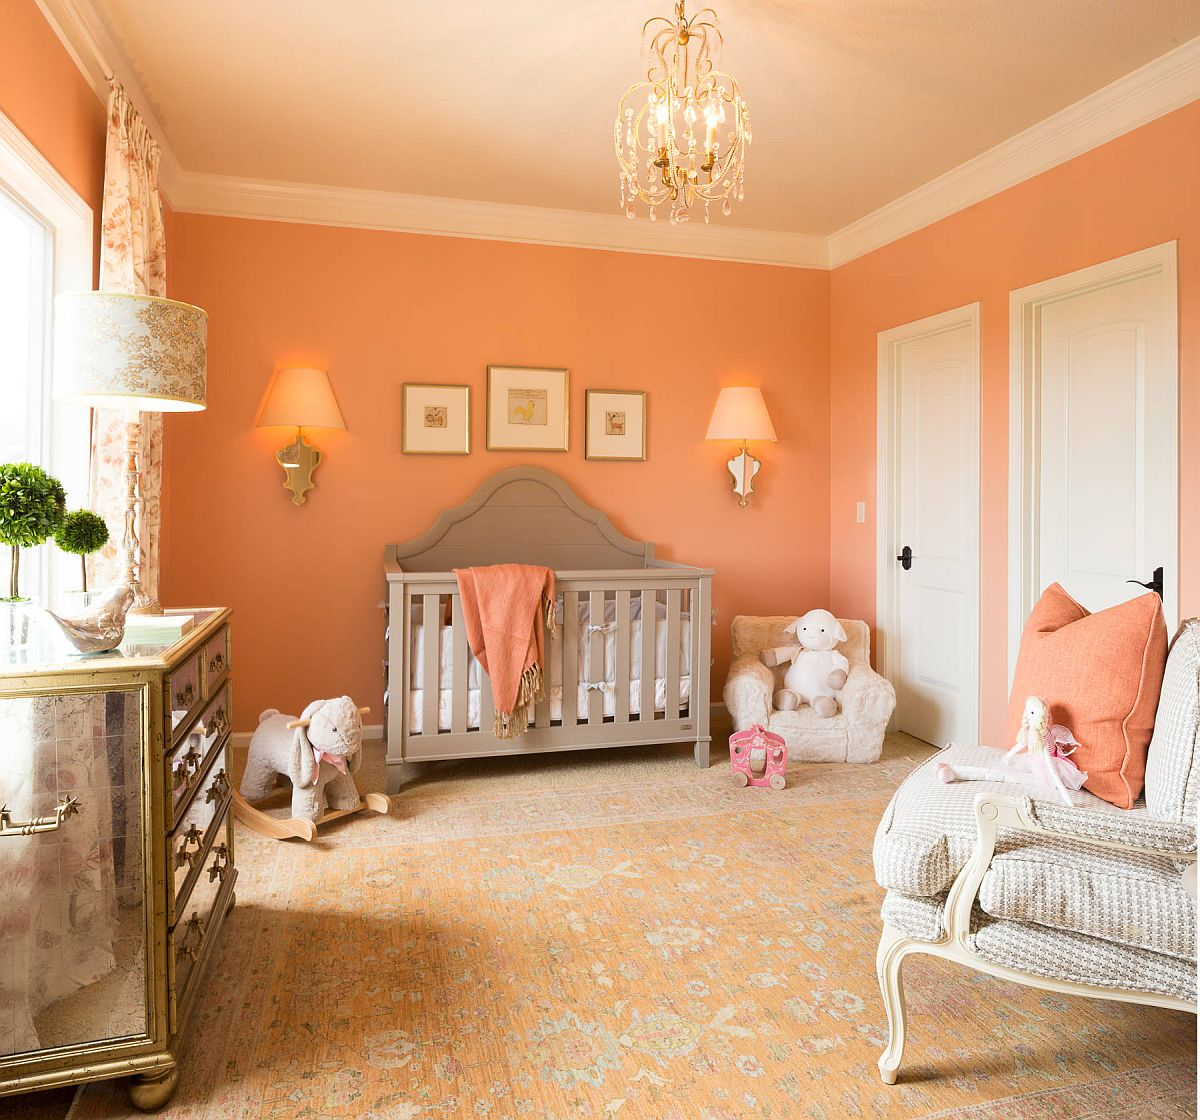 Heart-warming shade of orange - peach blossom, is perfect for the fall-themed girls' nursery